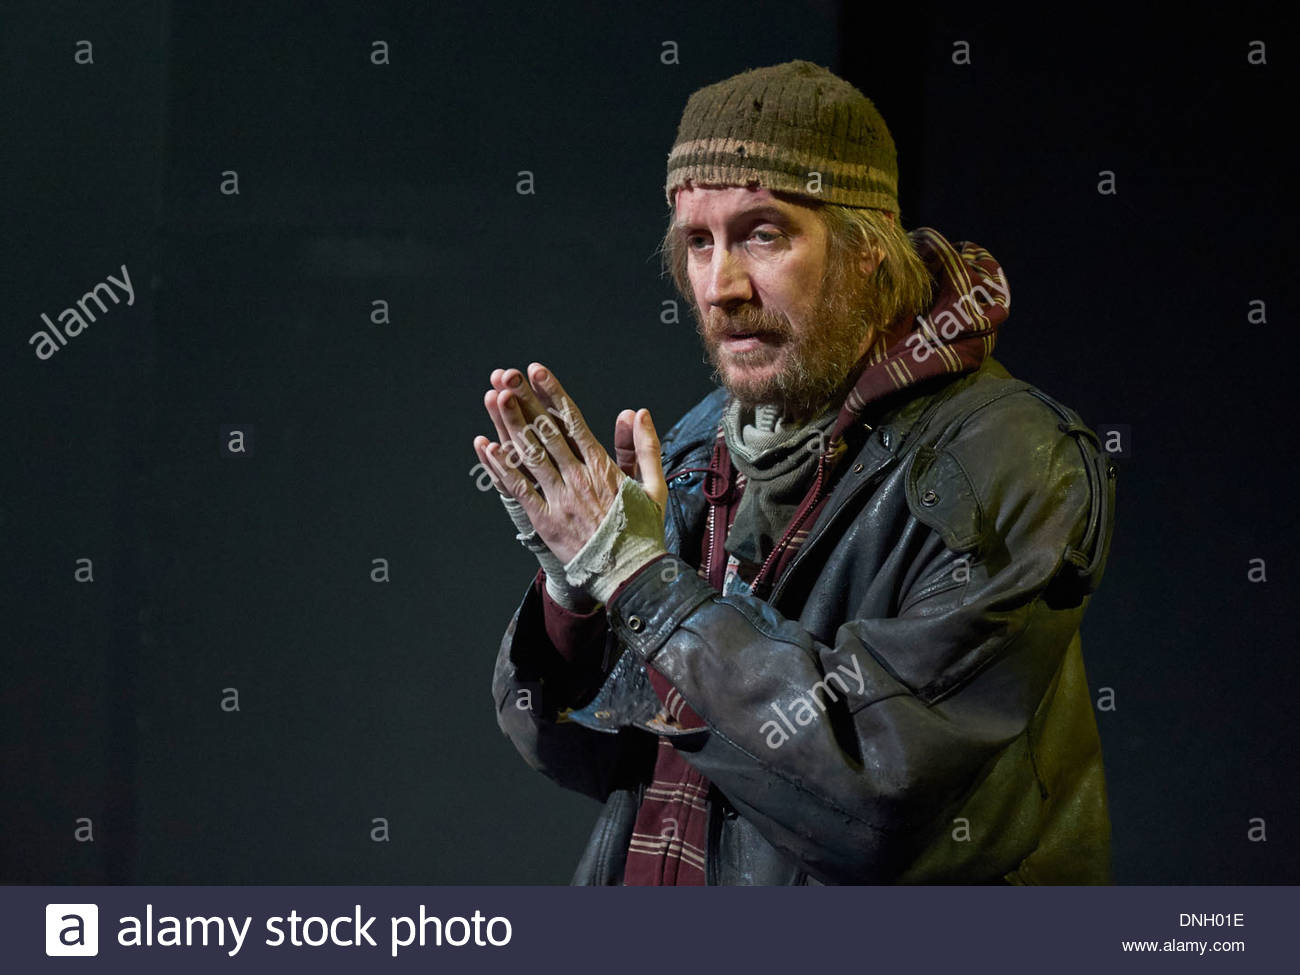 Protest Song by Tim Rice, directed by Polly Findlay. With Rhys Ifans as Danny. Opens at The Shed at The Royal National Theatre - Stock Image